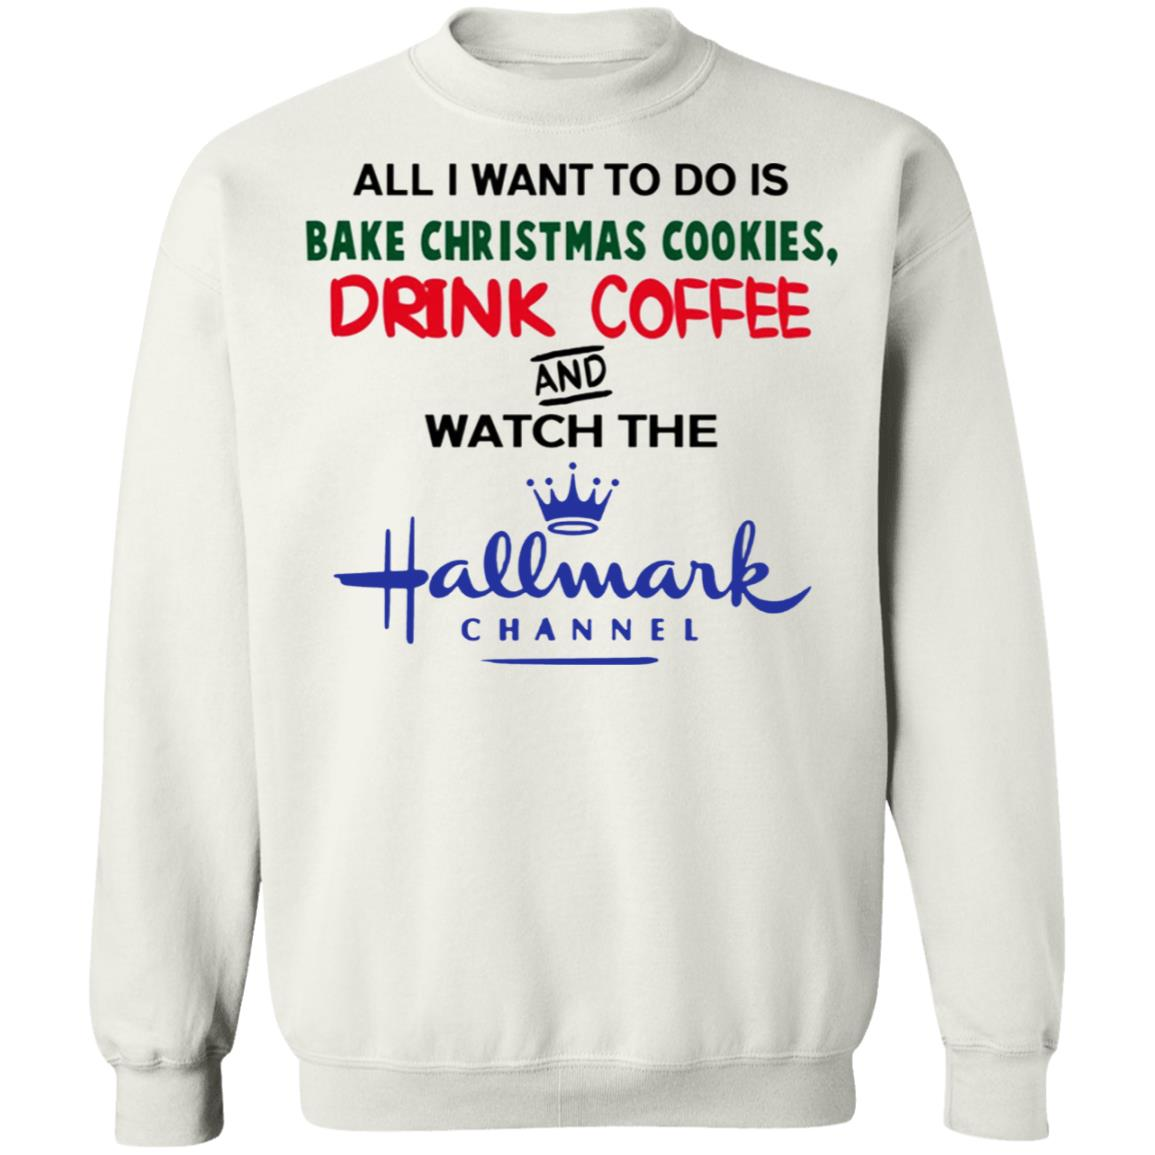 Christmas Cookies Hallmark.All I Want To Do Is Bake Christmas Cookies Drink Beer And